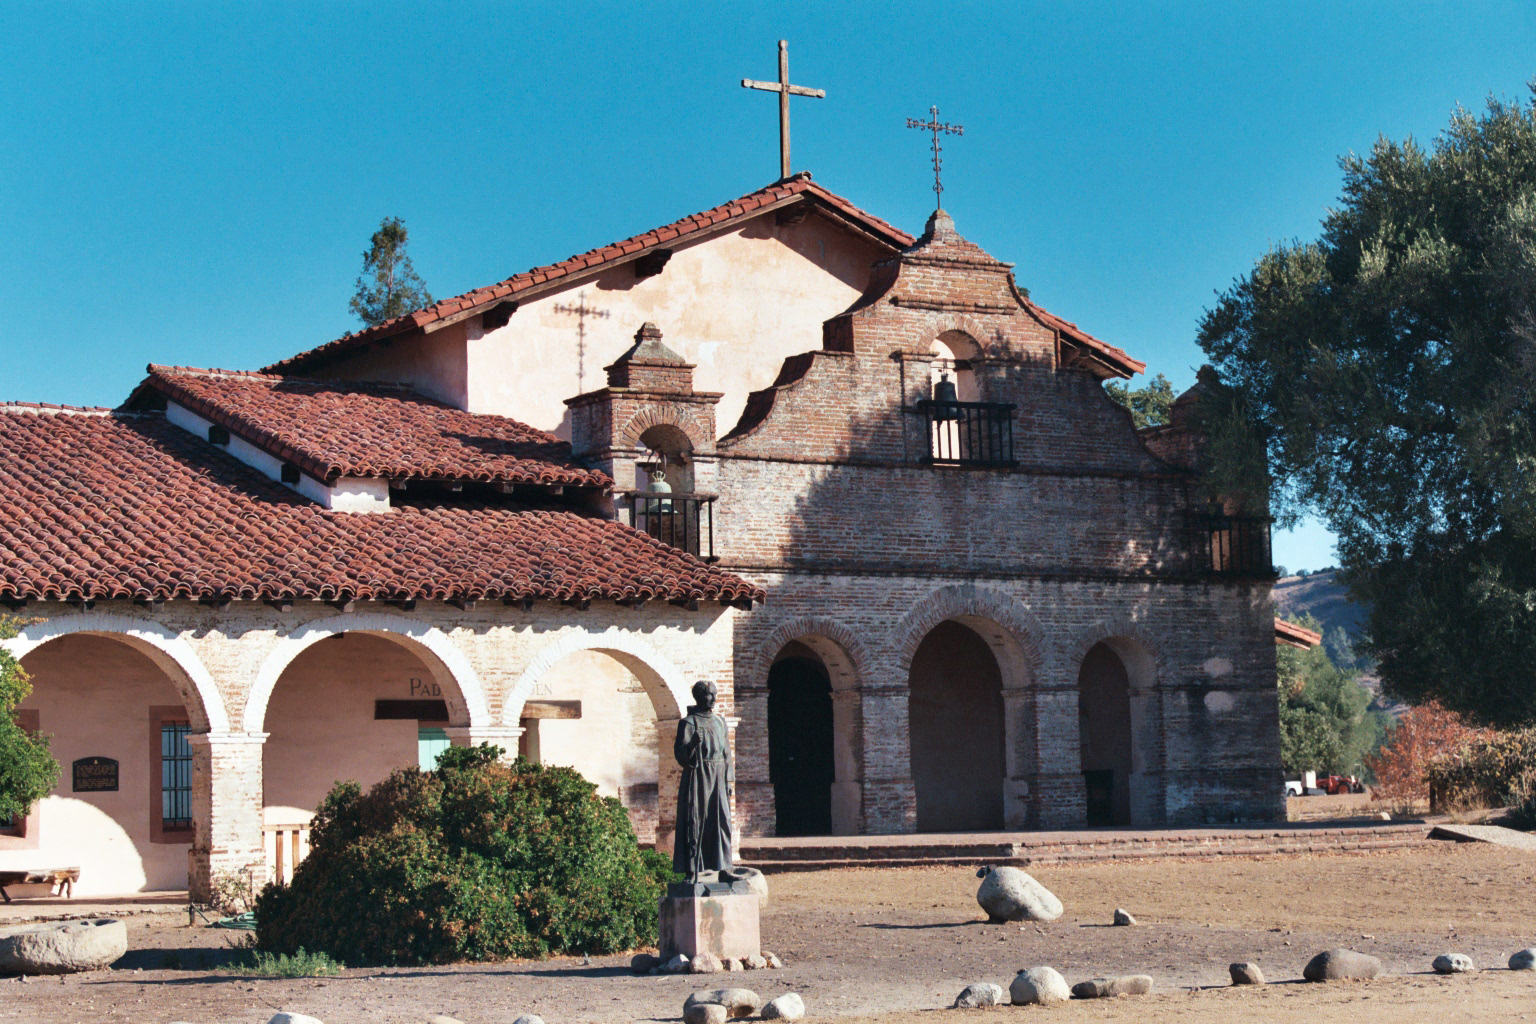 The historic Mission San Antonia de Padua in Monterey County, California. The Mission is the sponsor of an annual living history festival.